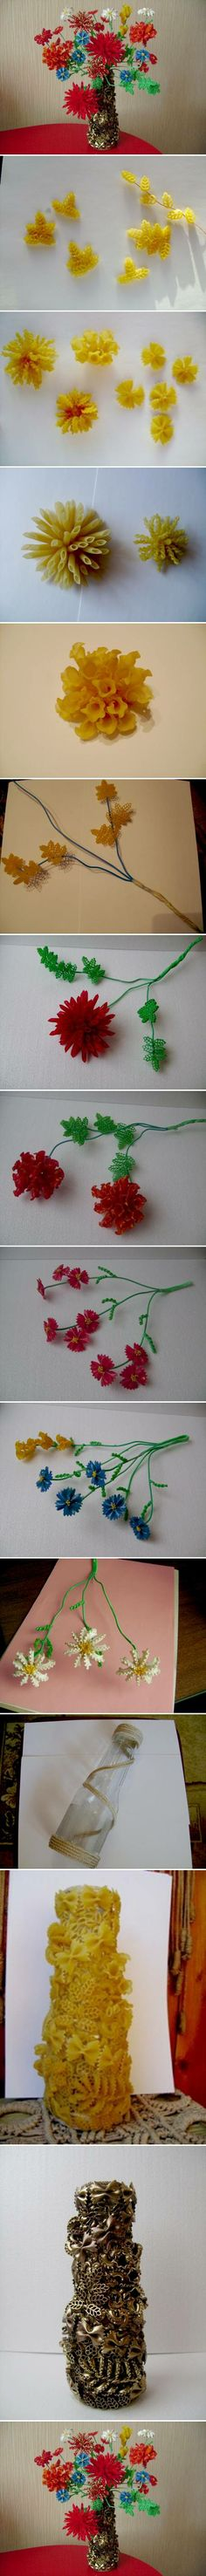 DIY Pasta Flowers and Vase DIY Projects - I like not so much the flowers but the. Pasta Crafts, Craft Projects, Crafts For Kids, Flower Crafts, Diy Flowers, Flower Vases, Flower Diy, Beaded Flowers, Pasta Art